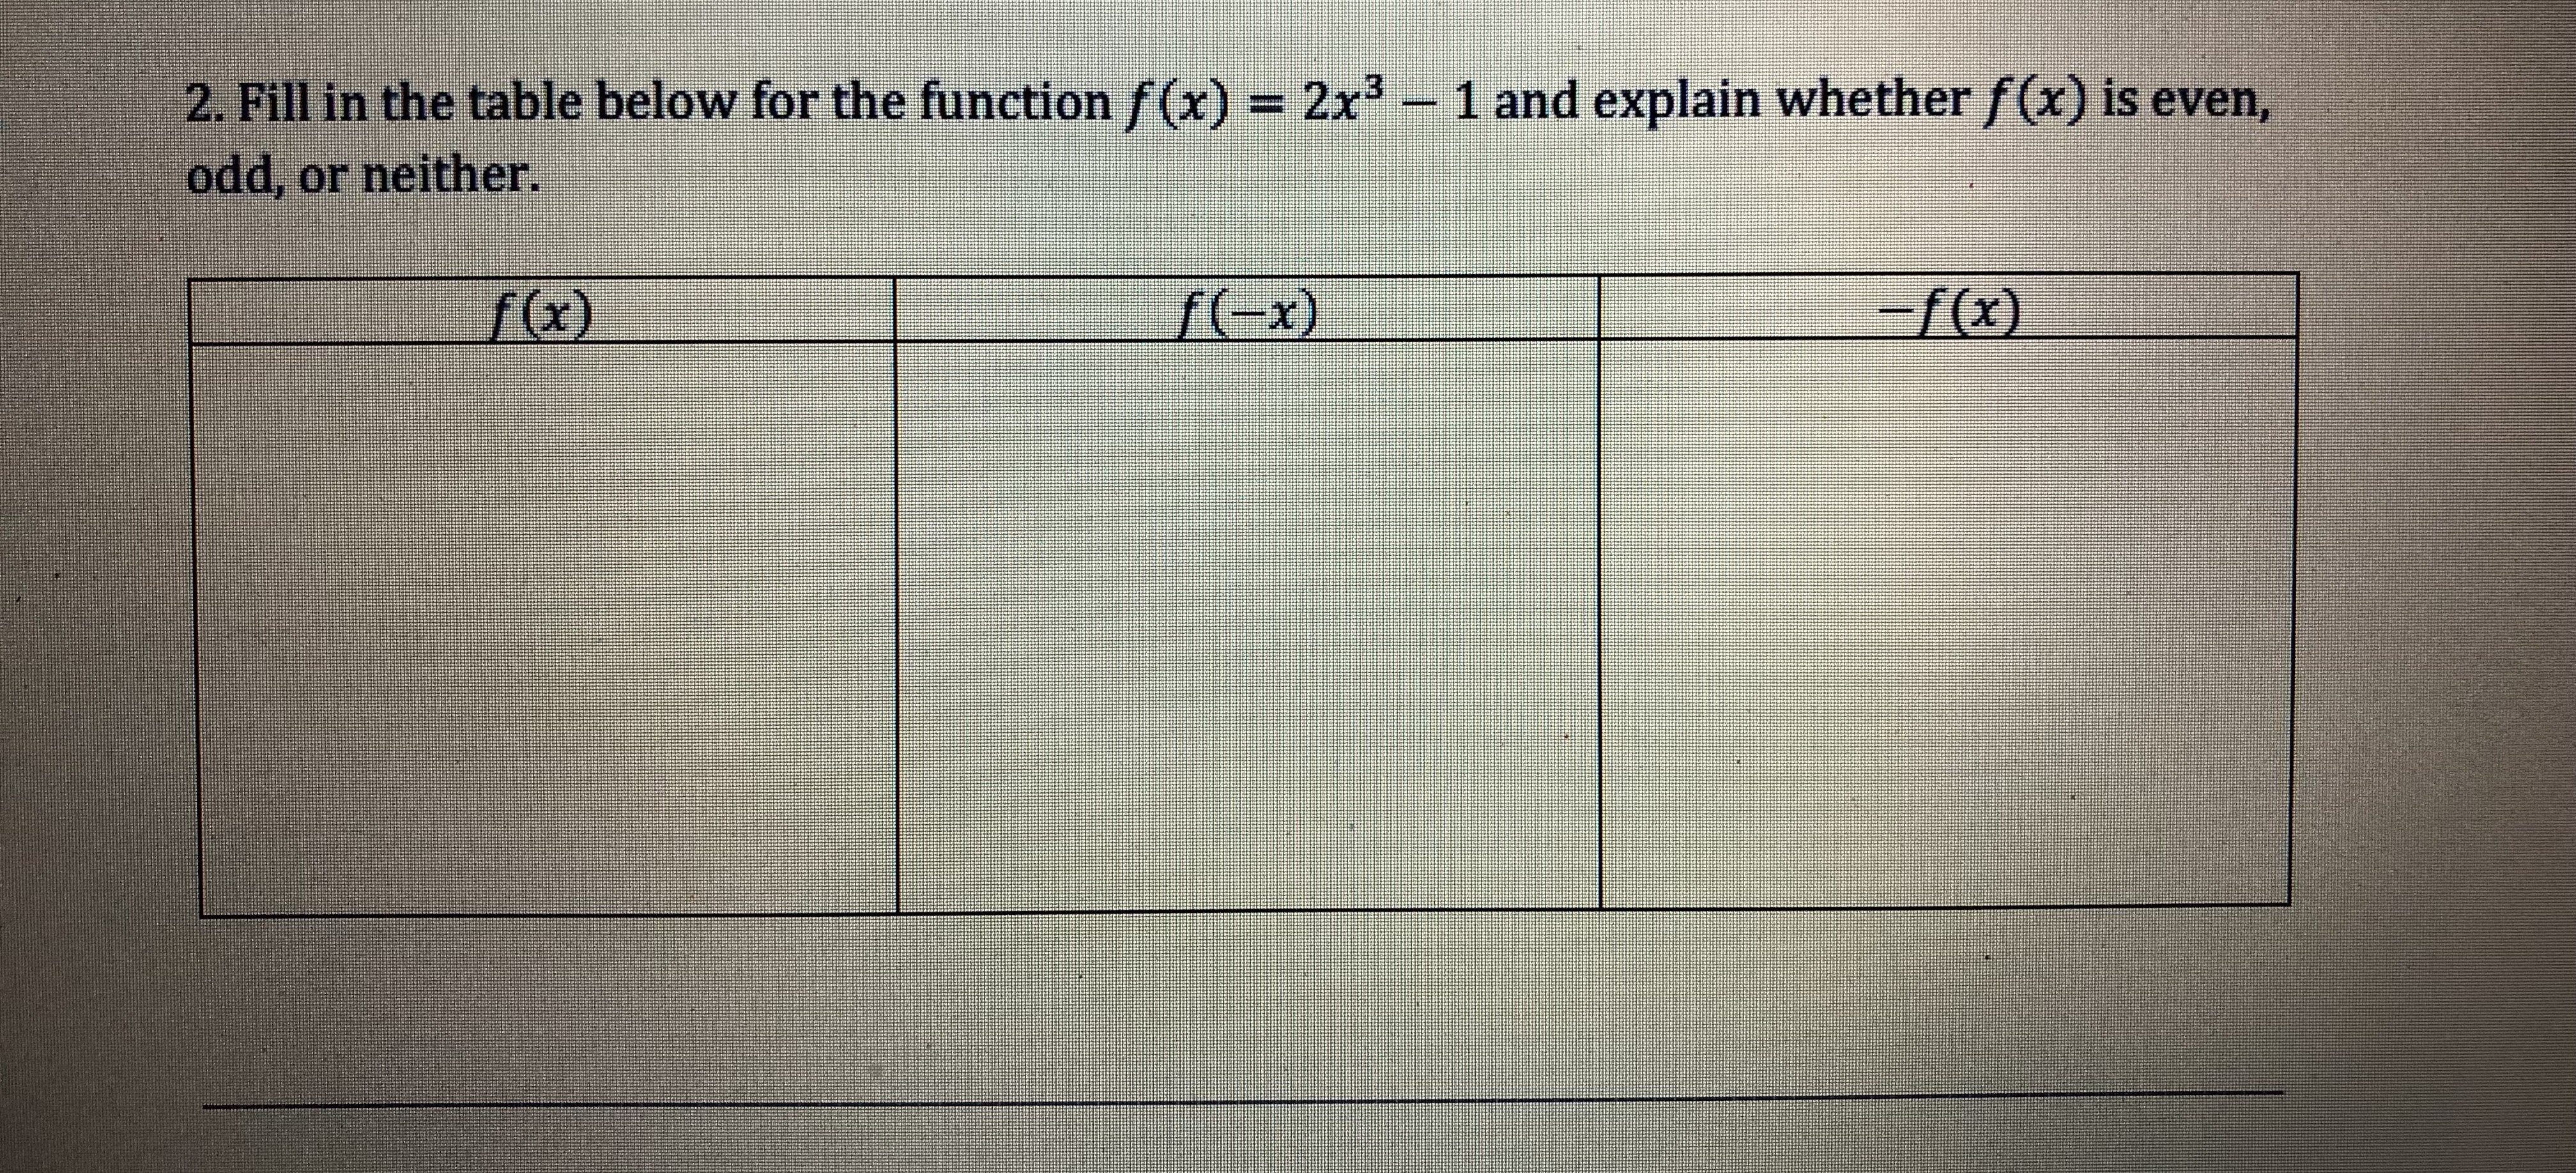 2. Fillin the table below forthe functionゾ(x)-2x3-1 and explain whether f(x) is even, odd, or neither